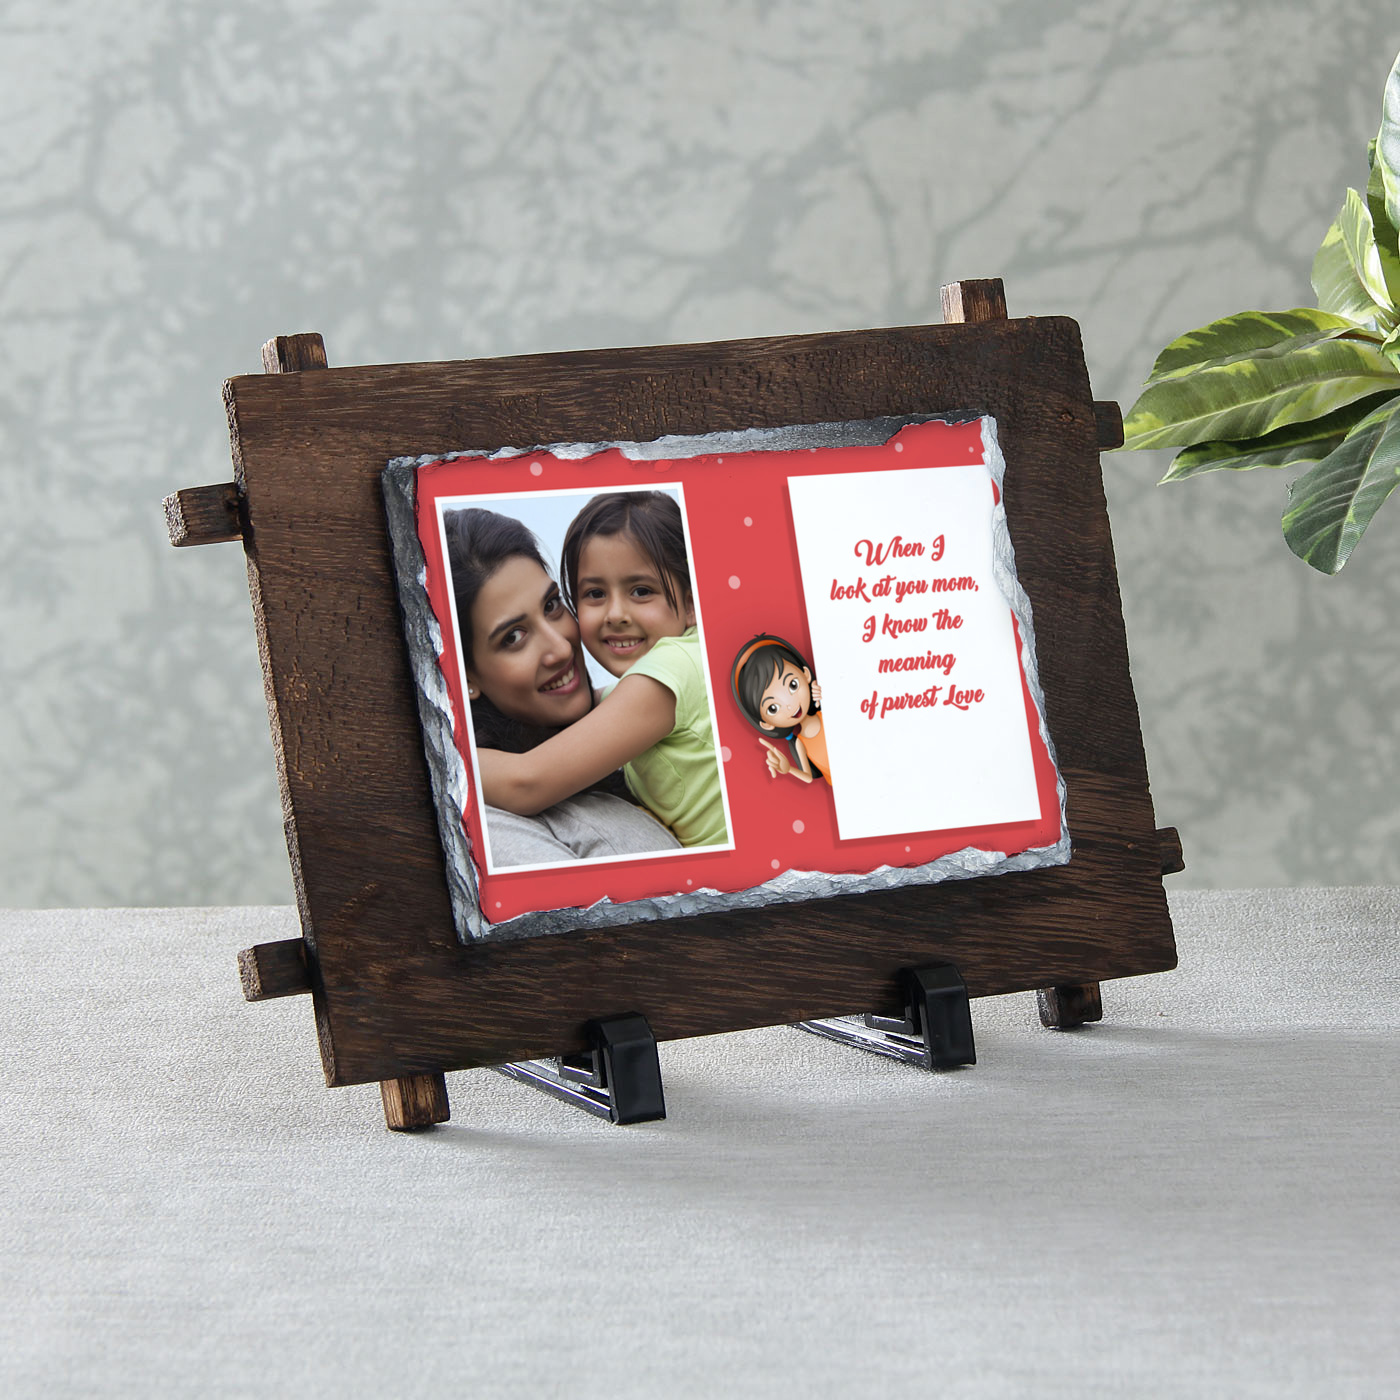 Mom's Pure Love Personalized Stone Photo Frame